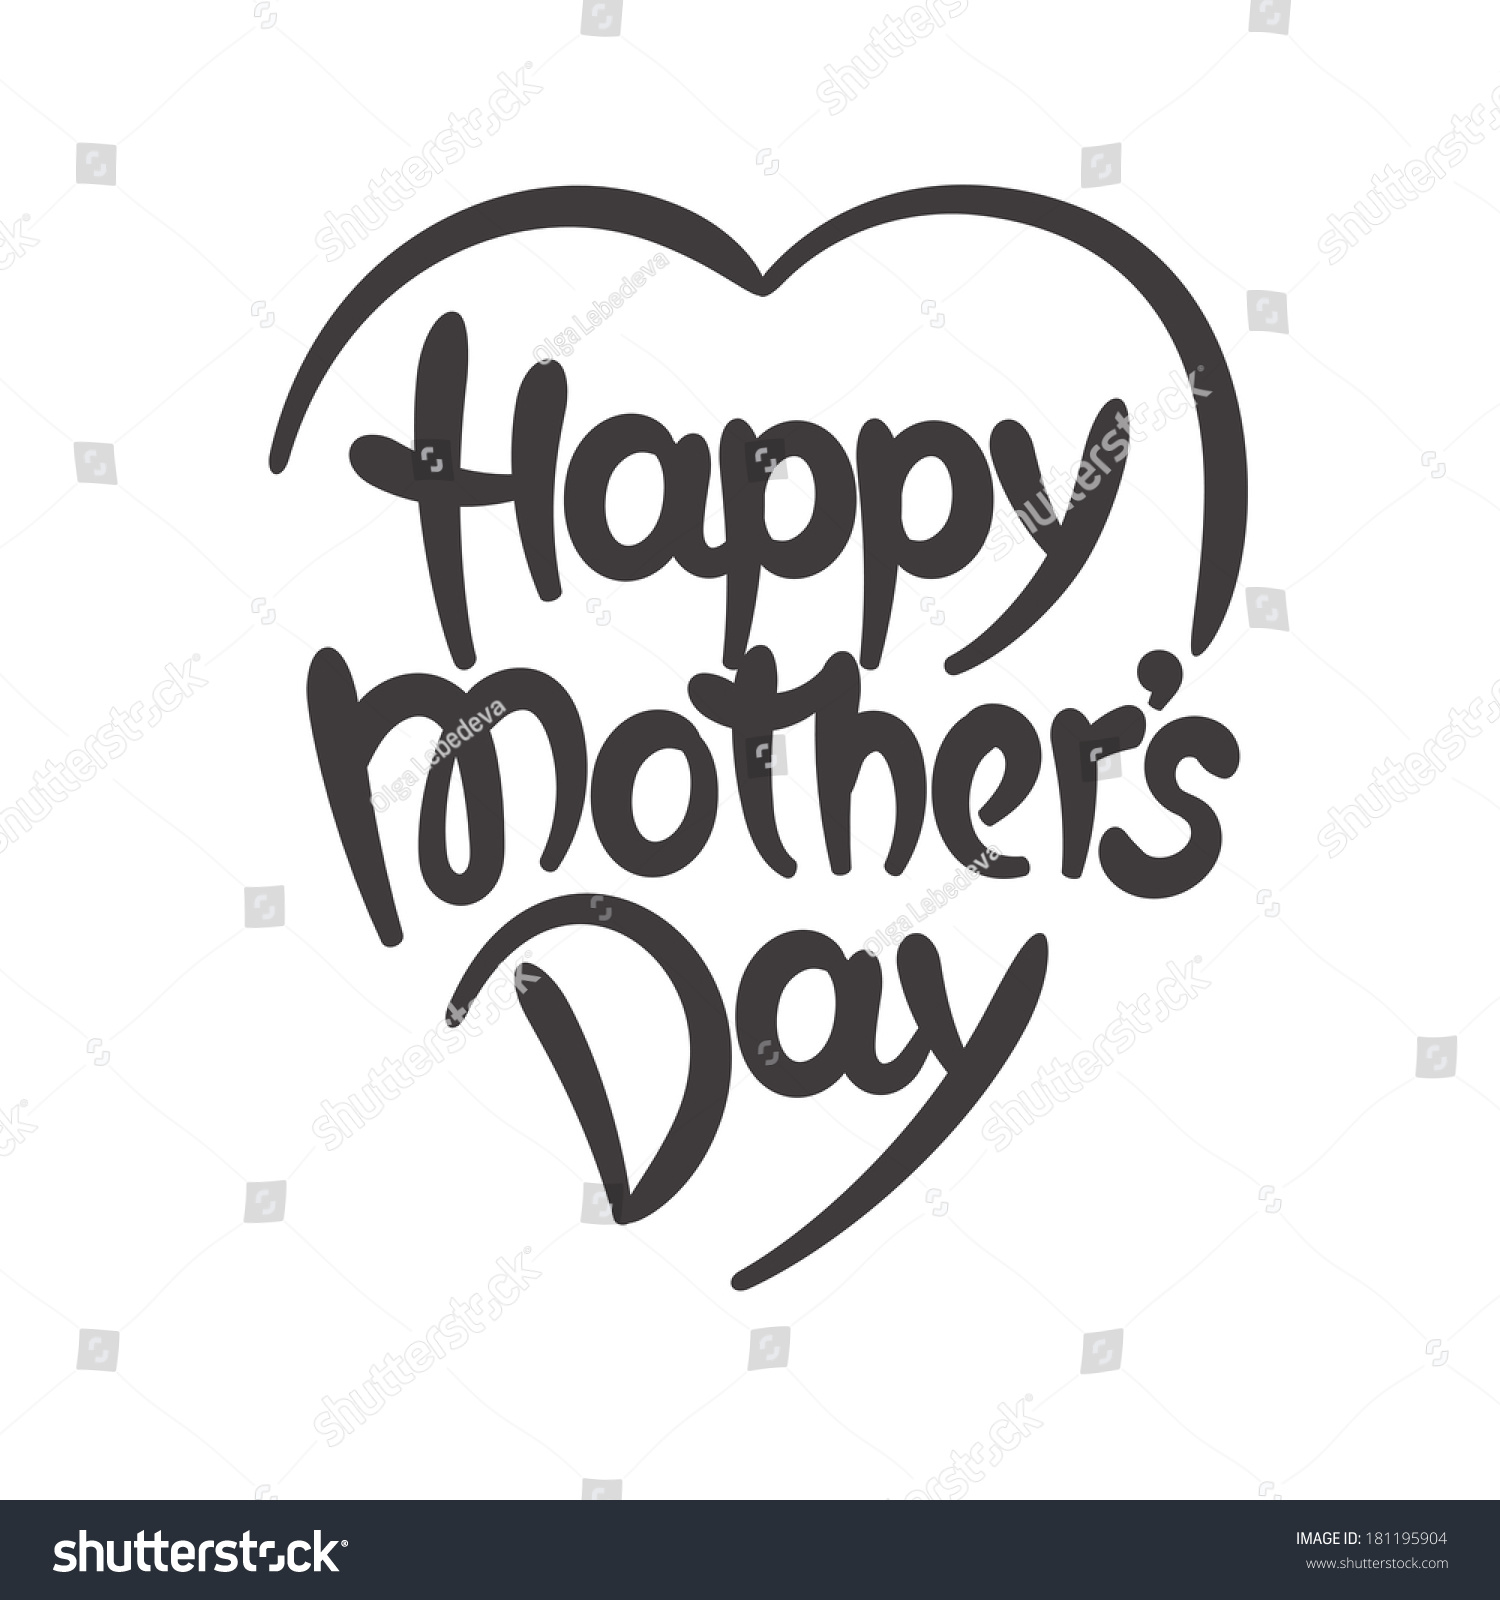 Happy Mothers Day Handdrawn Lettering Stock Vector